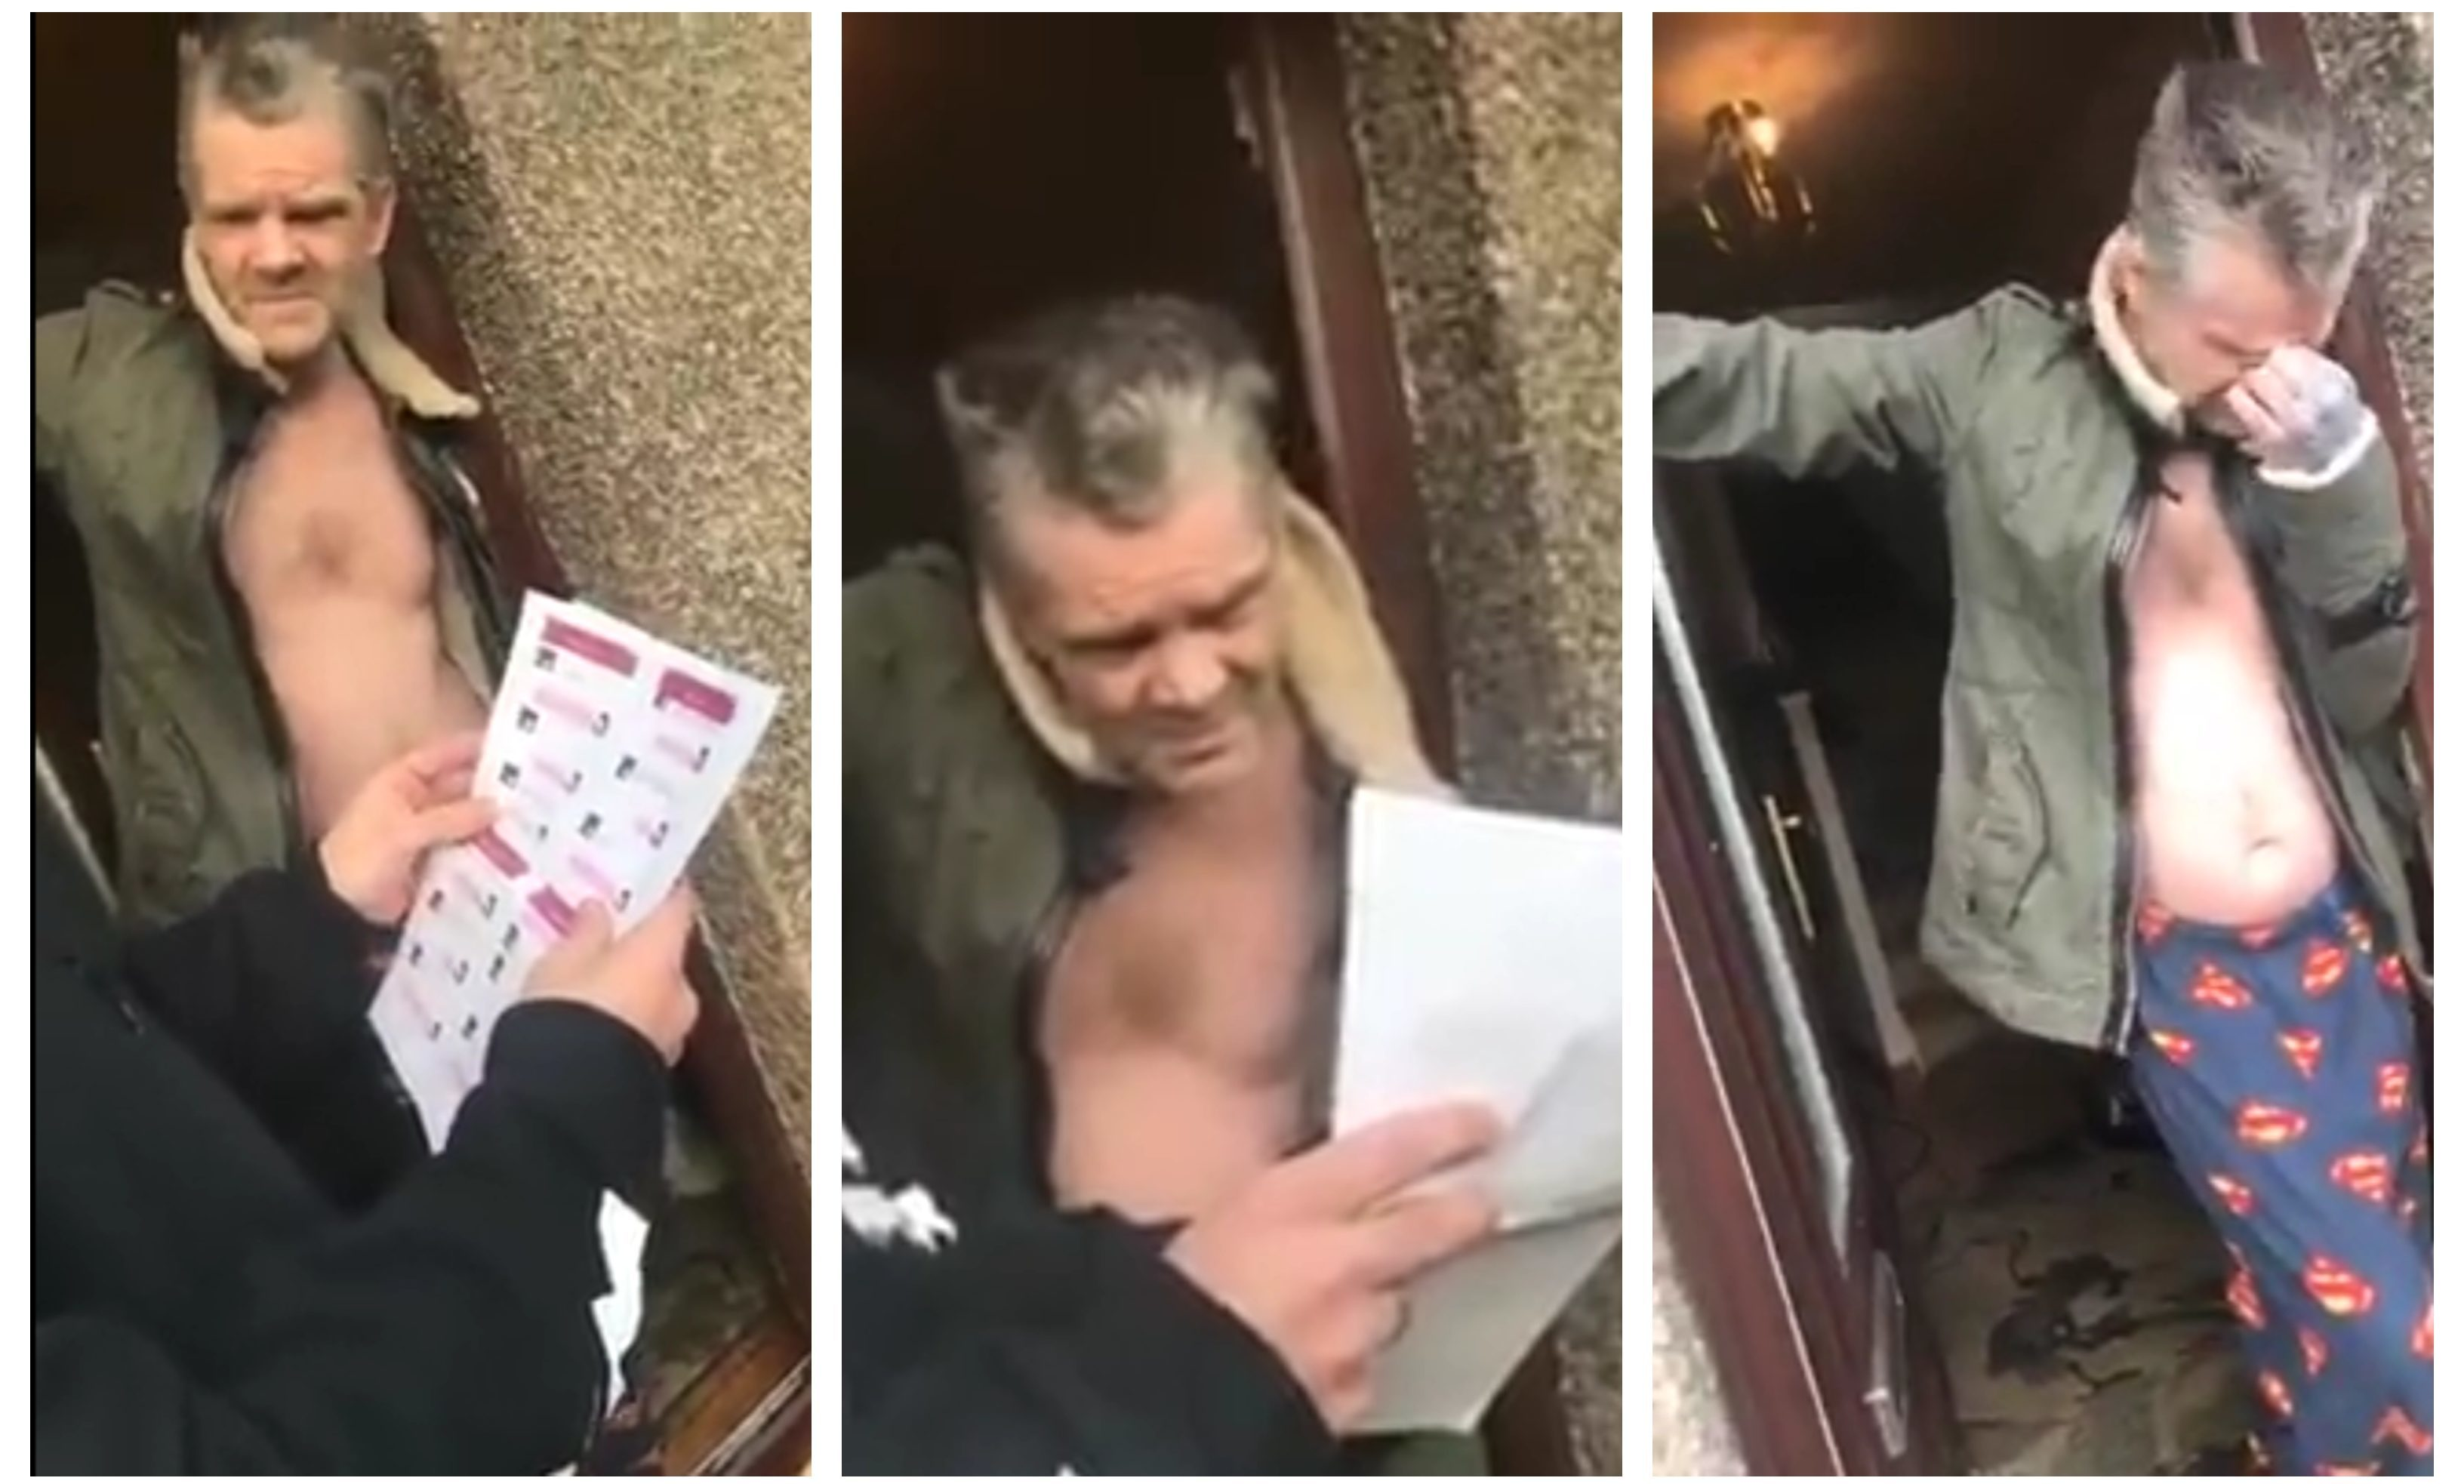 Billy Scott is confronted by the group at his home in Kirkcaldy.